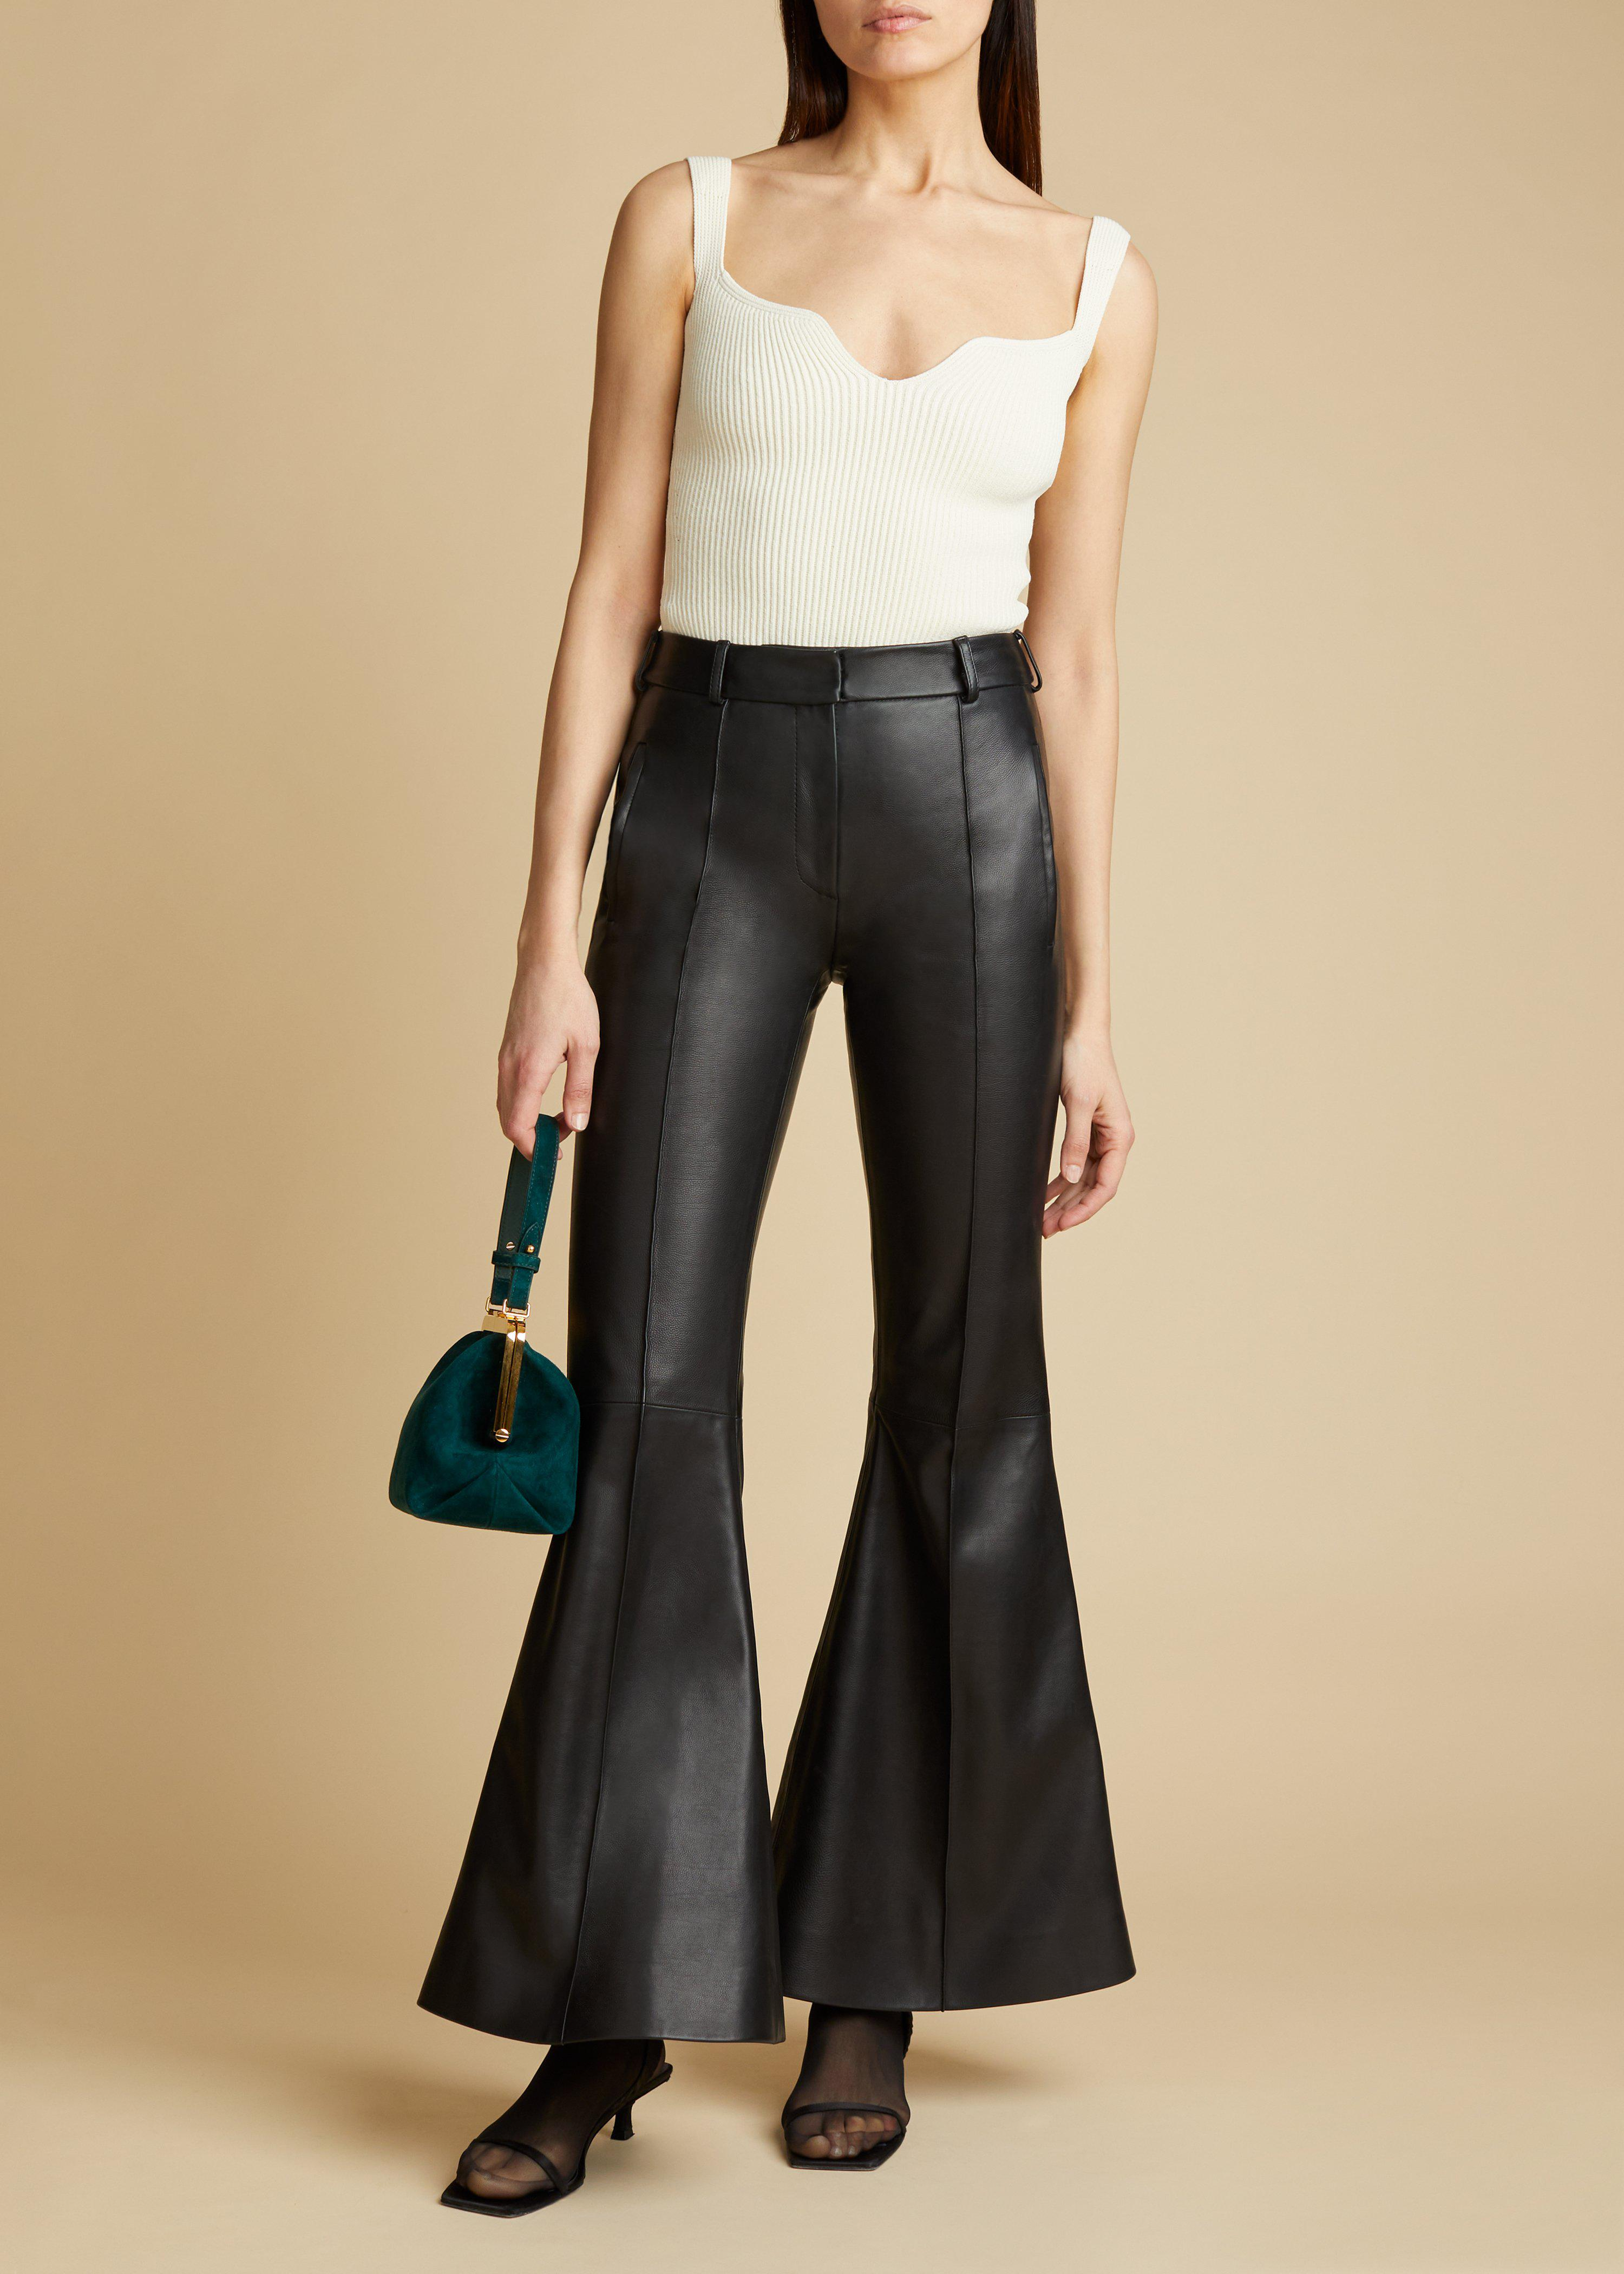 The Charles Pant in Black Leather